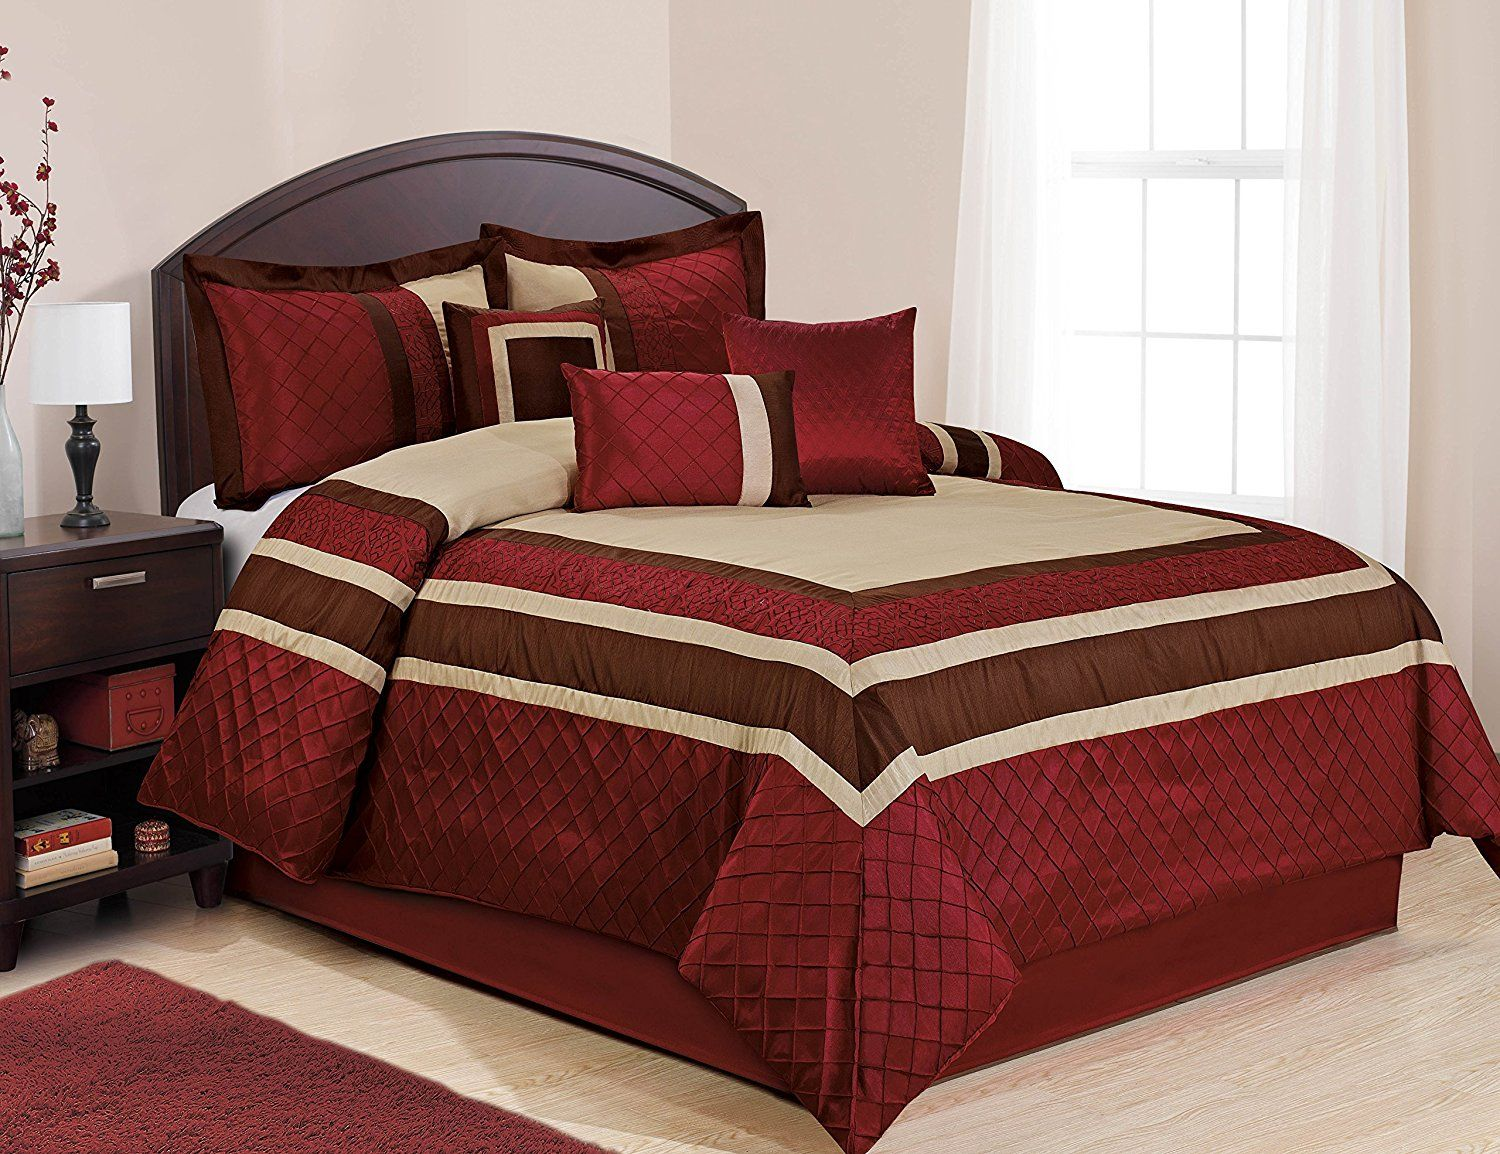 night fetching a various room bedding us valance cherry brown california king bag round green using dark flower picture decorative lenin in bed wood sage pattern exquisite decoration bedroom flooring stand and of including girl extraordinary image pink chandelier red